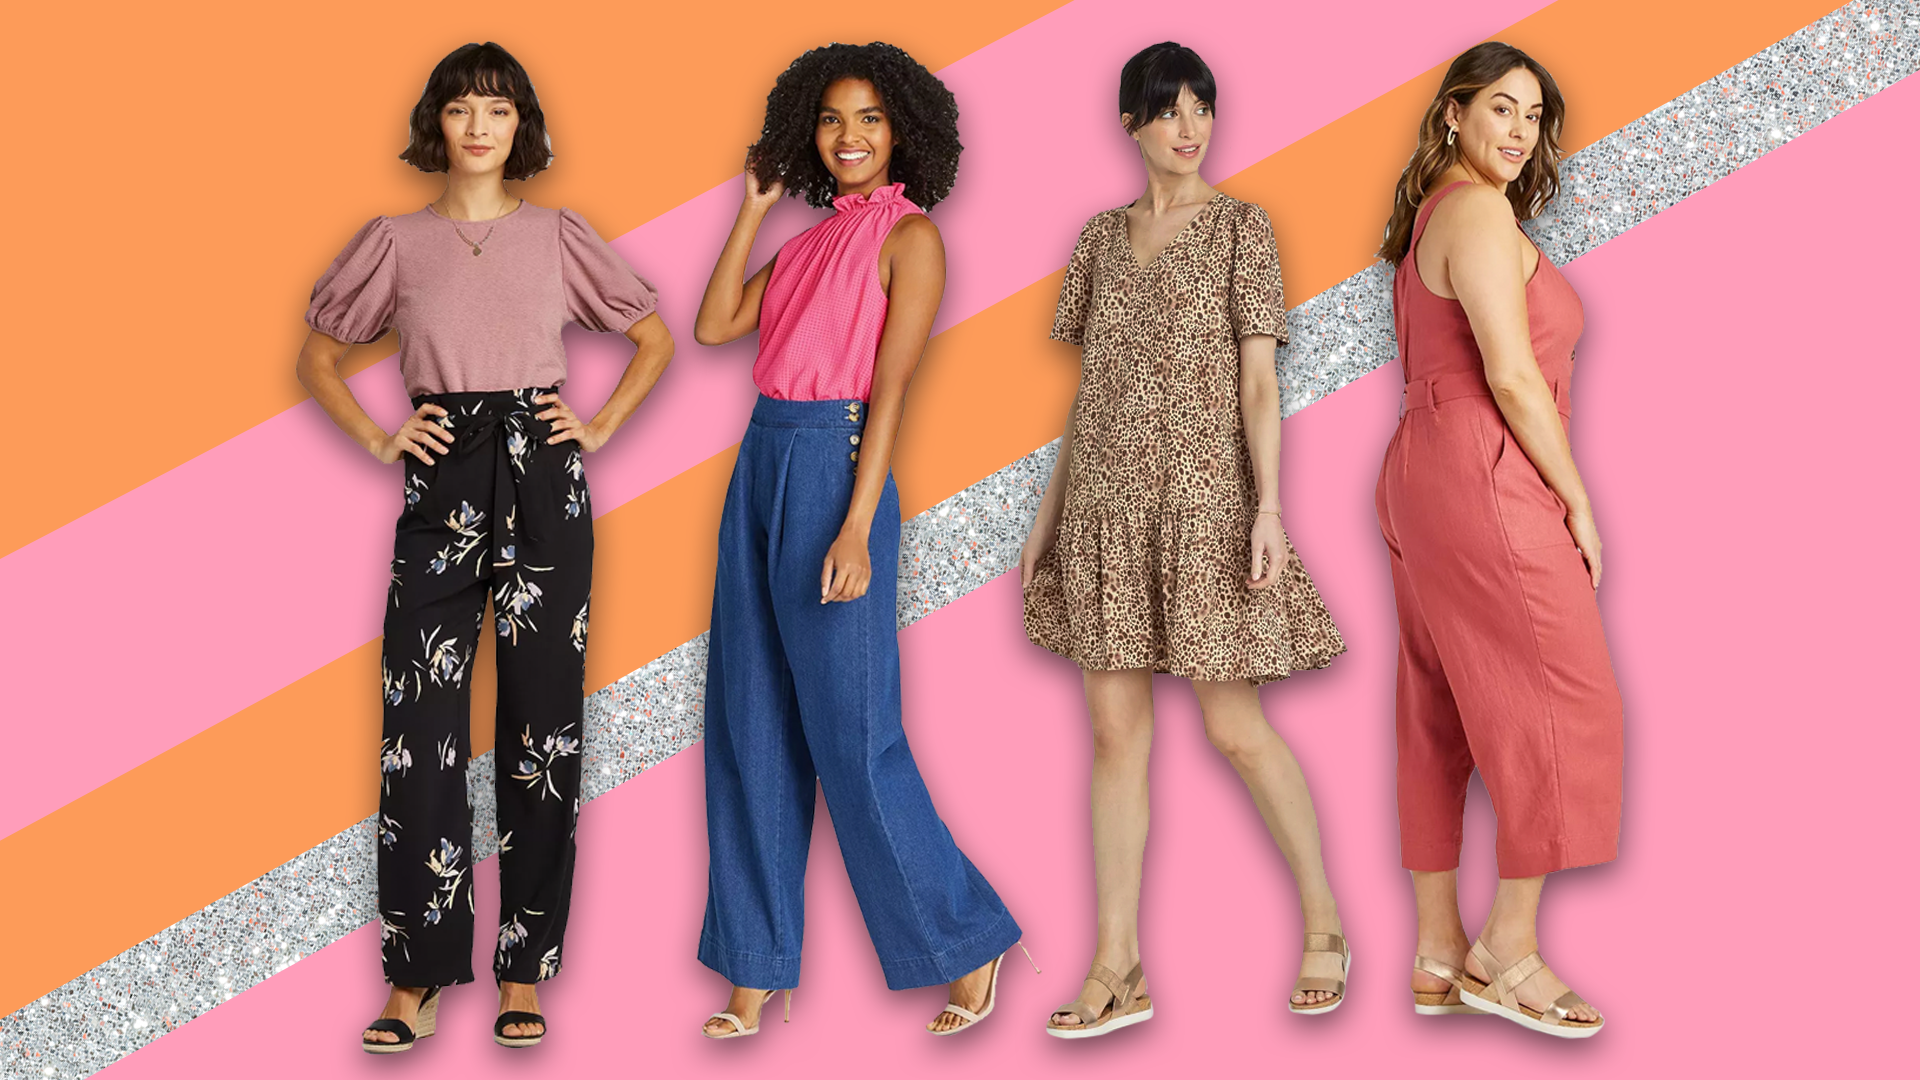 13 Summer Looks To Buy On Target.com Right Now If You're Missing Your Regular Target Run